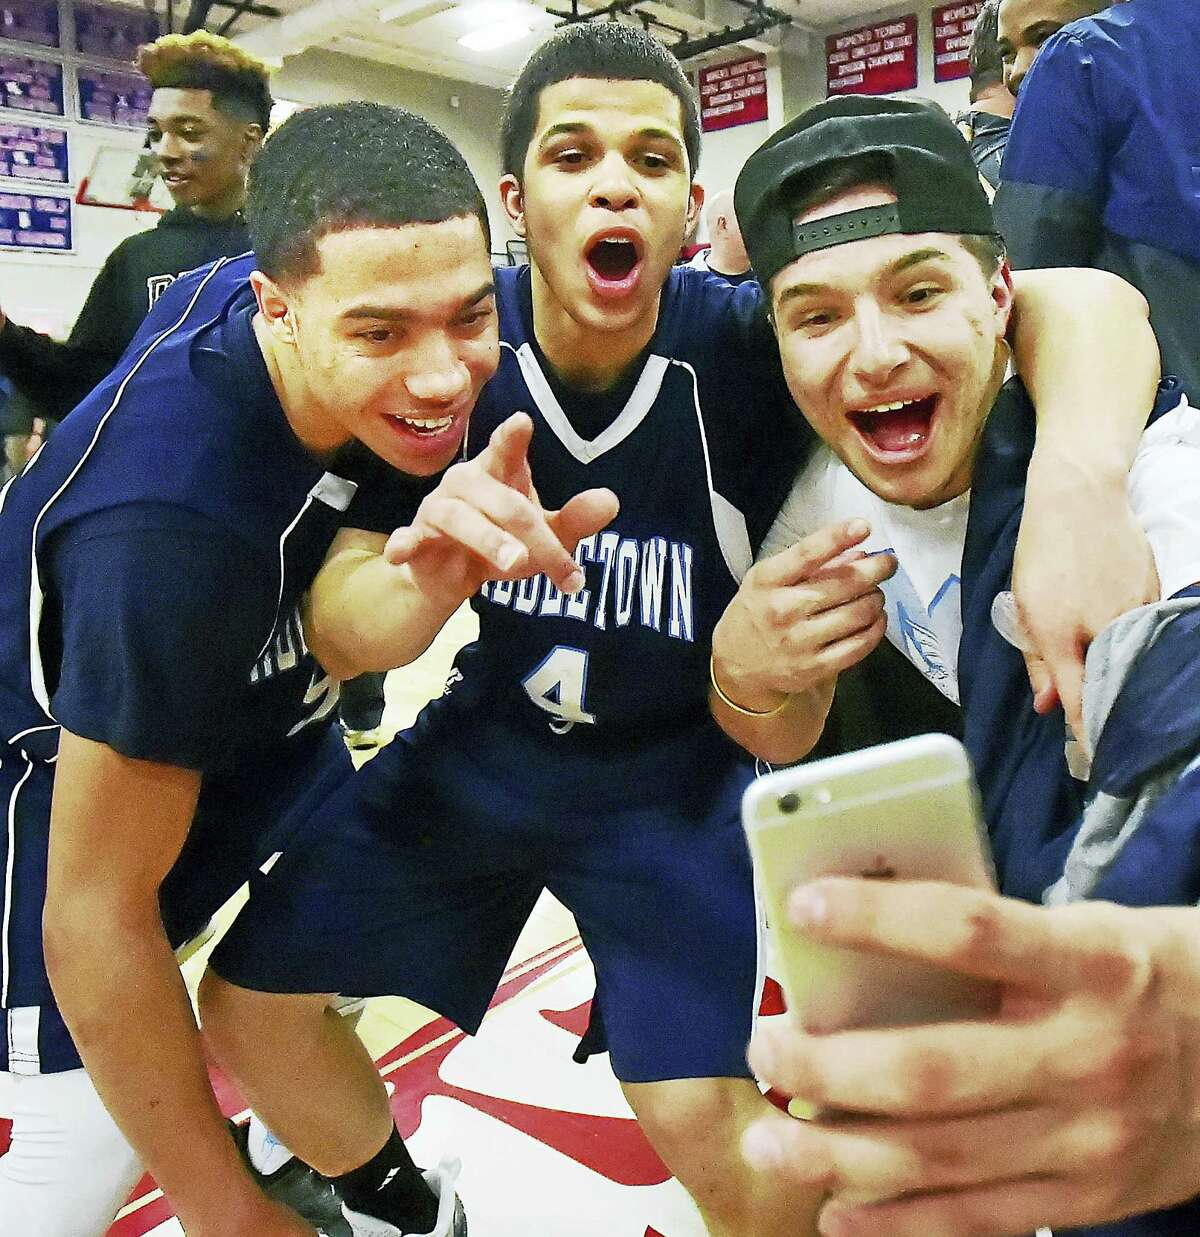 Middletown seniors Caylen Williams and Emmitt Riddick take a selfie with their classmate Josh Tow after Tuesday's 73-68 win over Newington in a Class L semifinal game in Berlin.